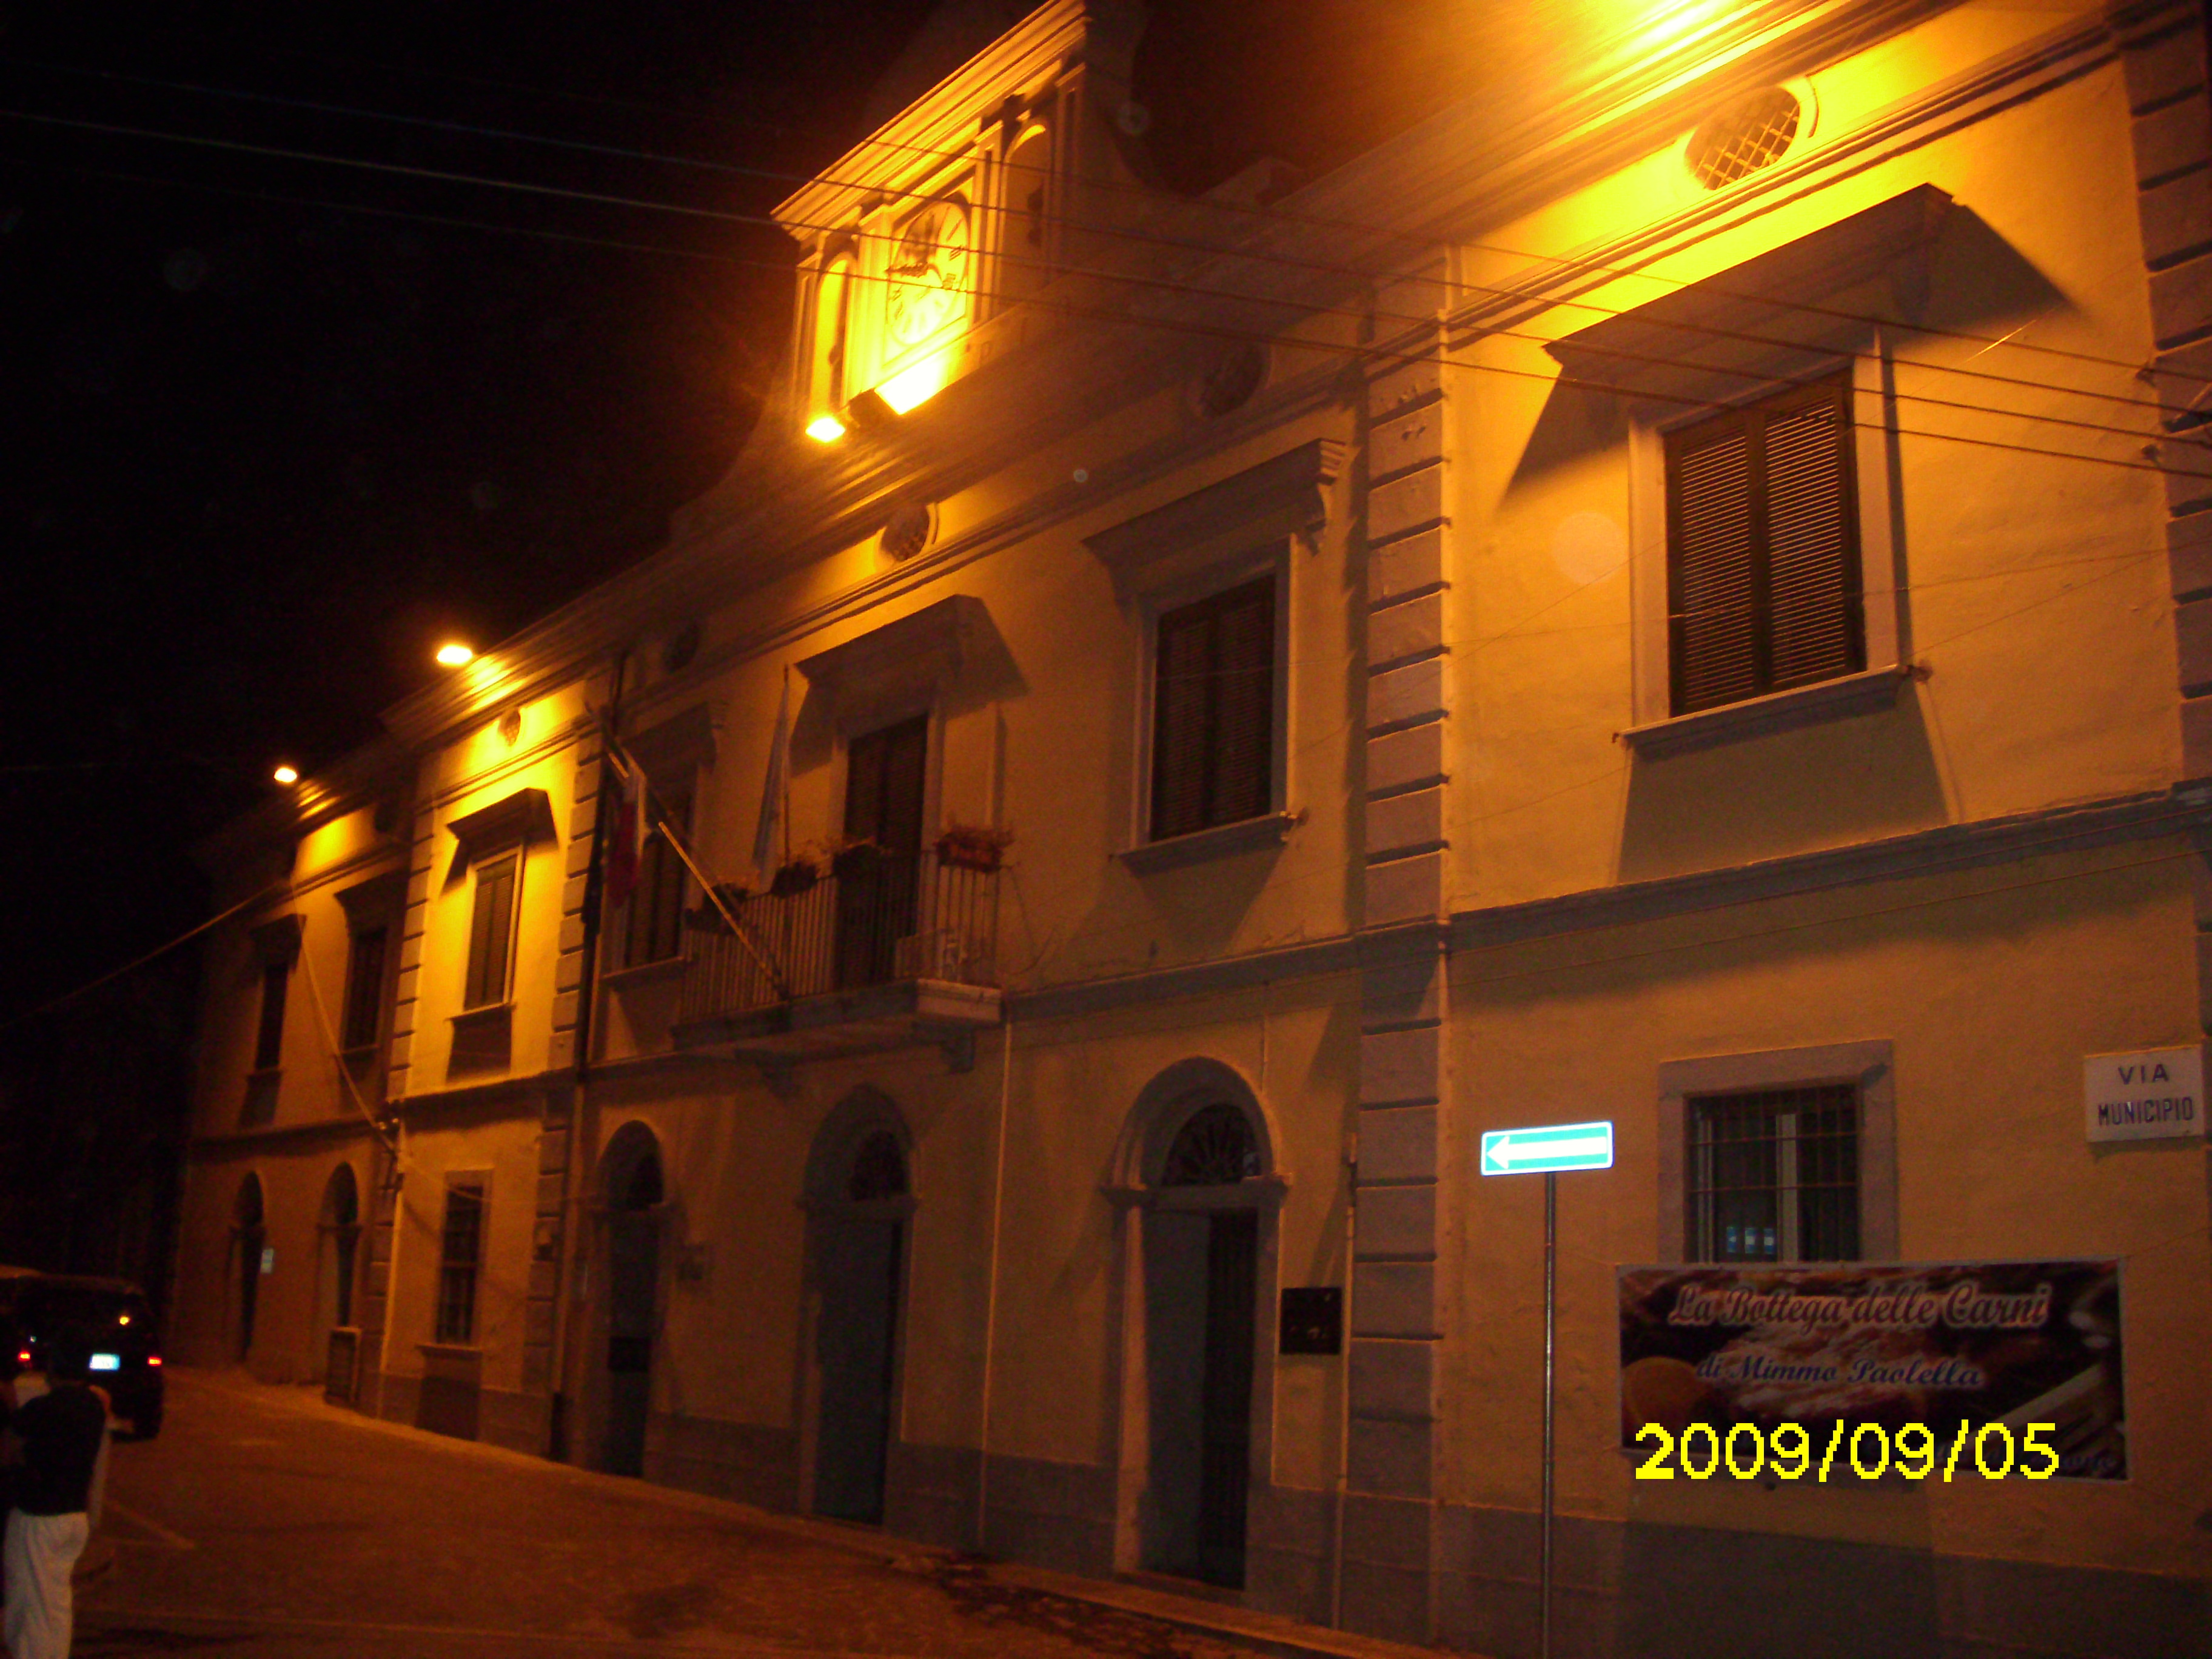 Municipio Cancello Arnone